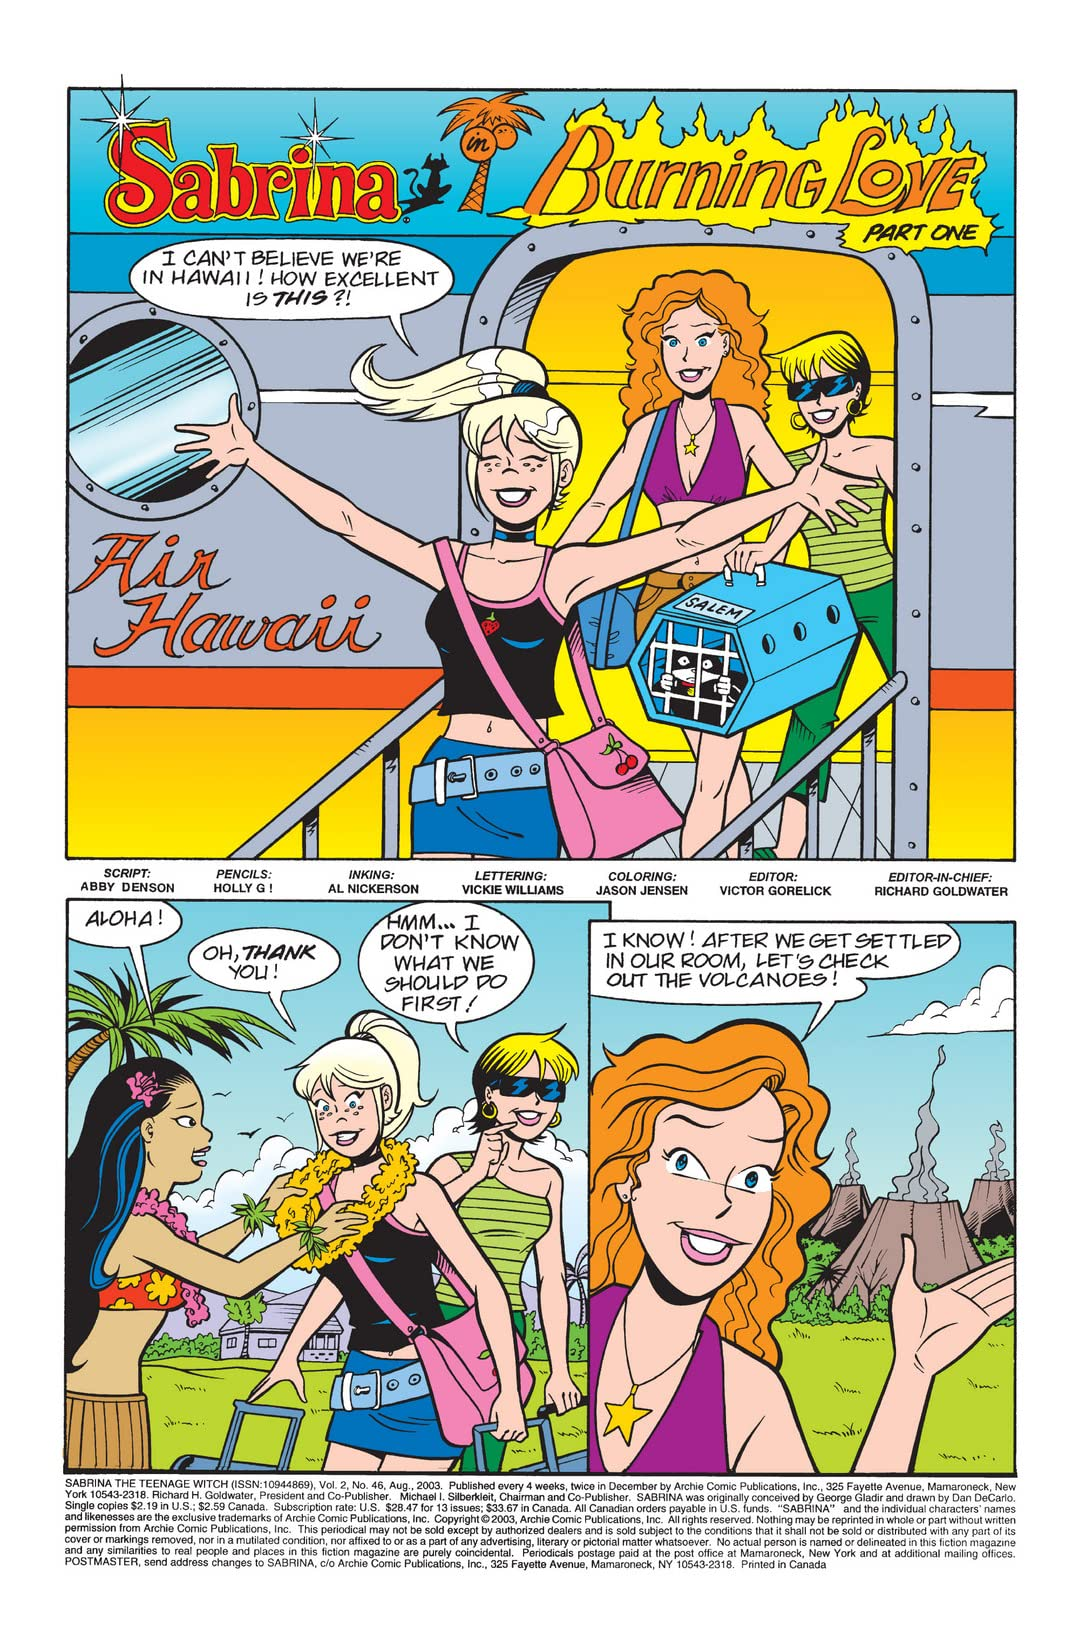 Sabrina the Teenage Witch #46